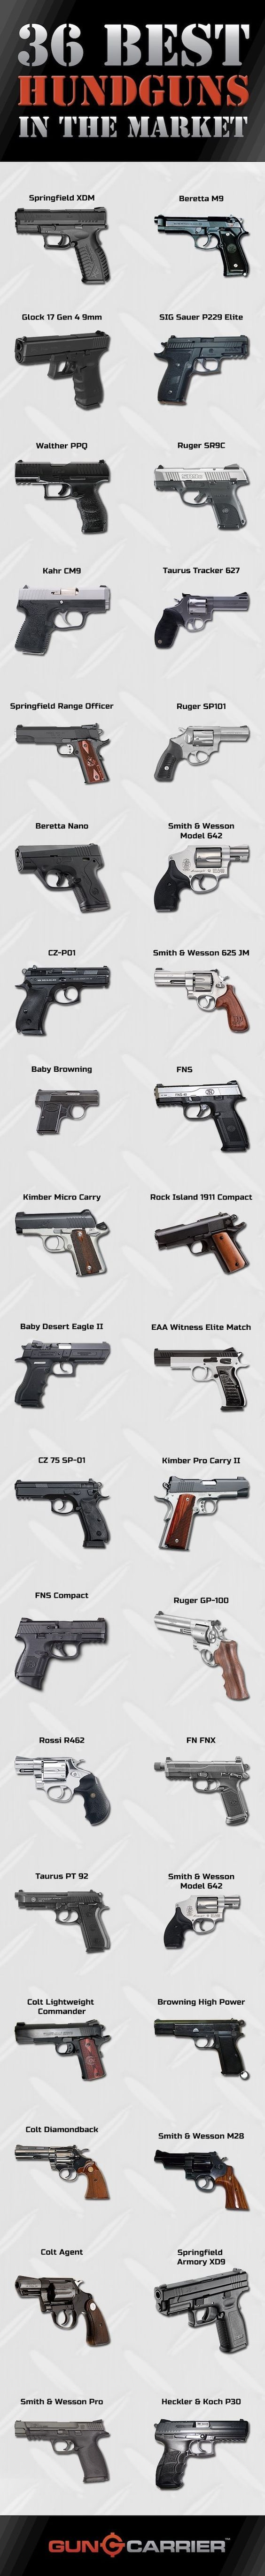 36 Best Handguns in the Market